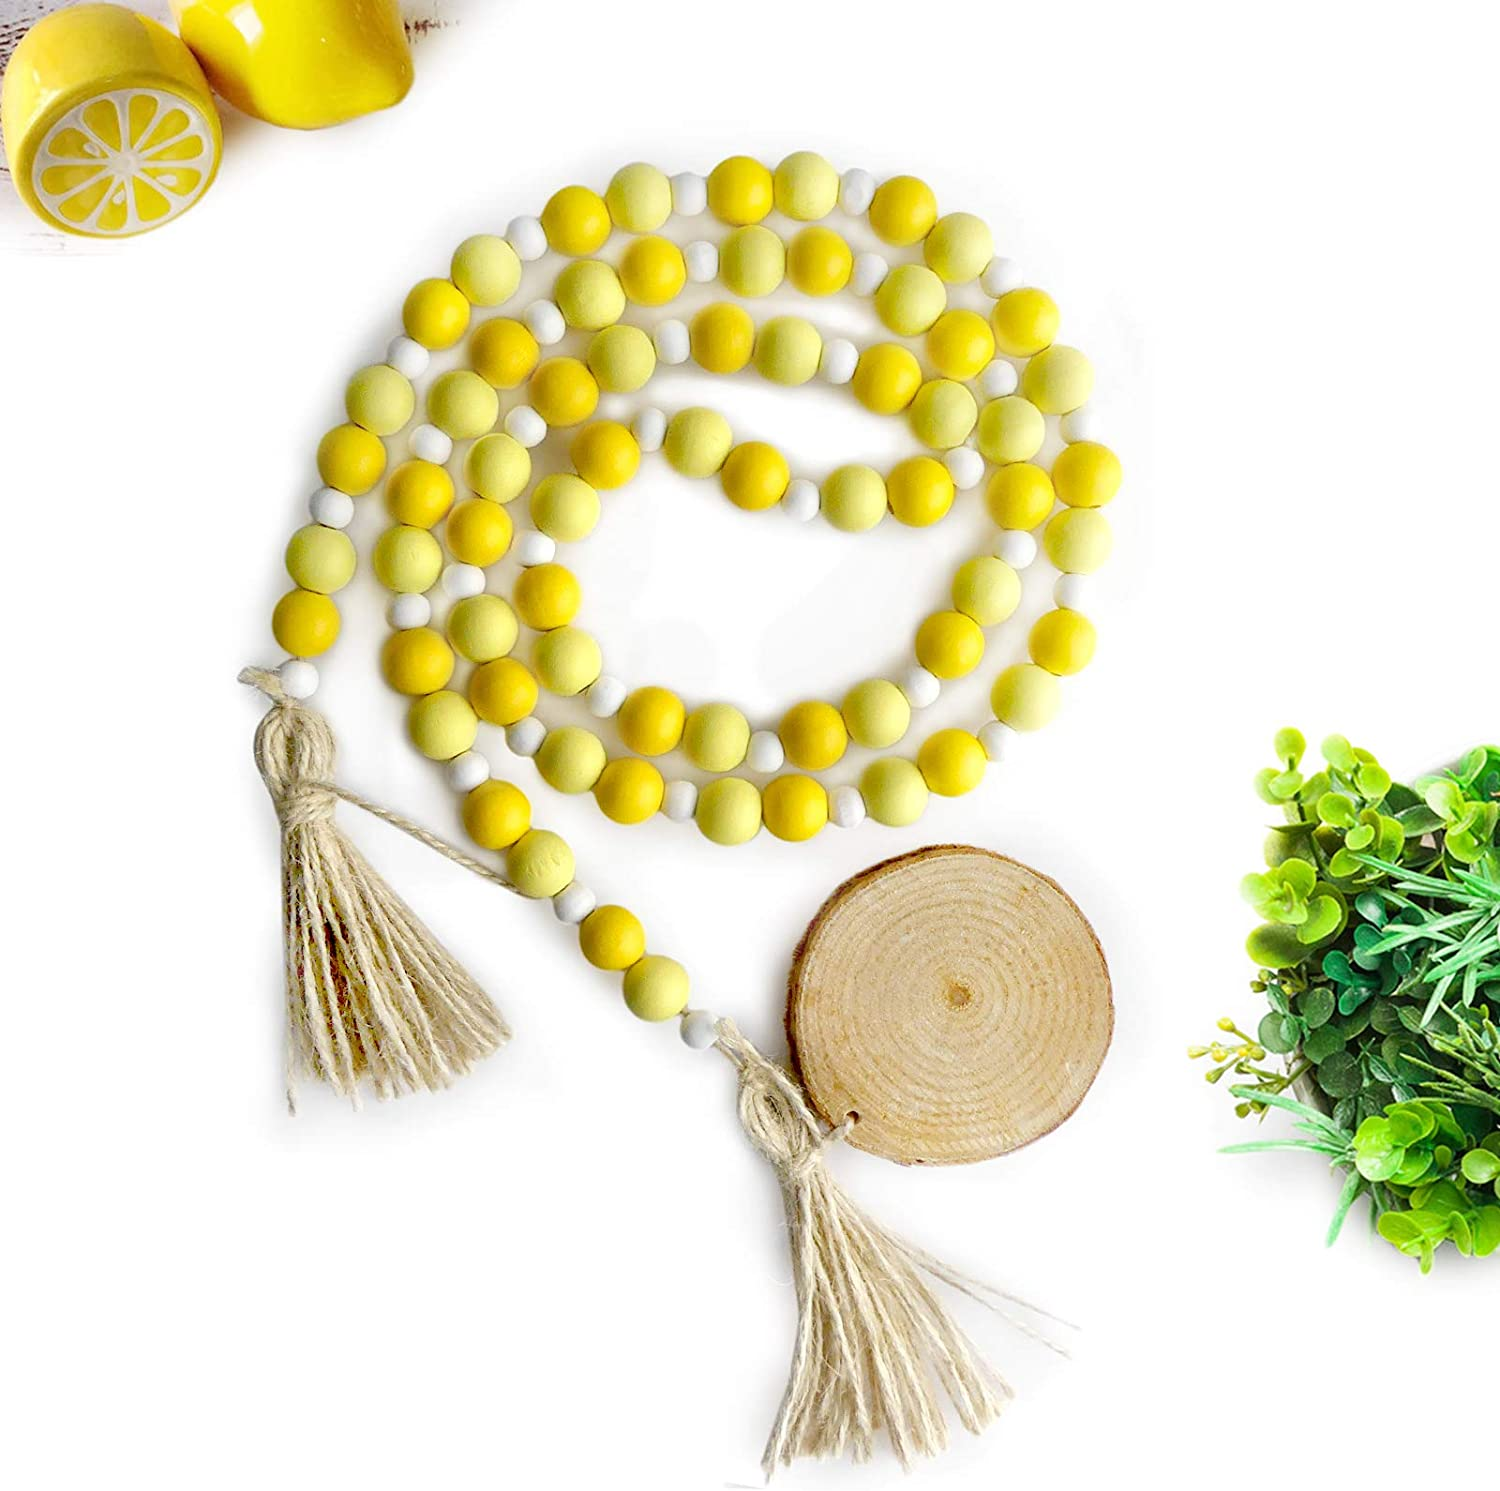 EKOI 58in Lemon Yellow Rustic Wood Bead Garland Wooden Beaded Hanging Tassel Holiday Decor Country Farmhouse Style Summer Spring Lemonade Accents Themed Tiered Tray Home Coffee Table Wall